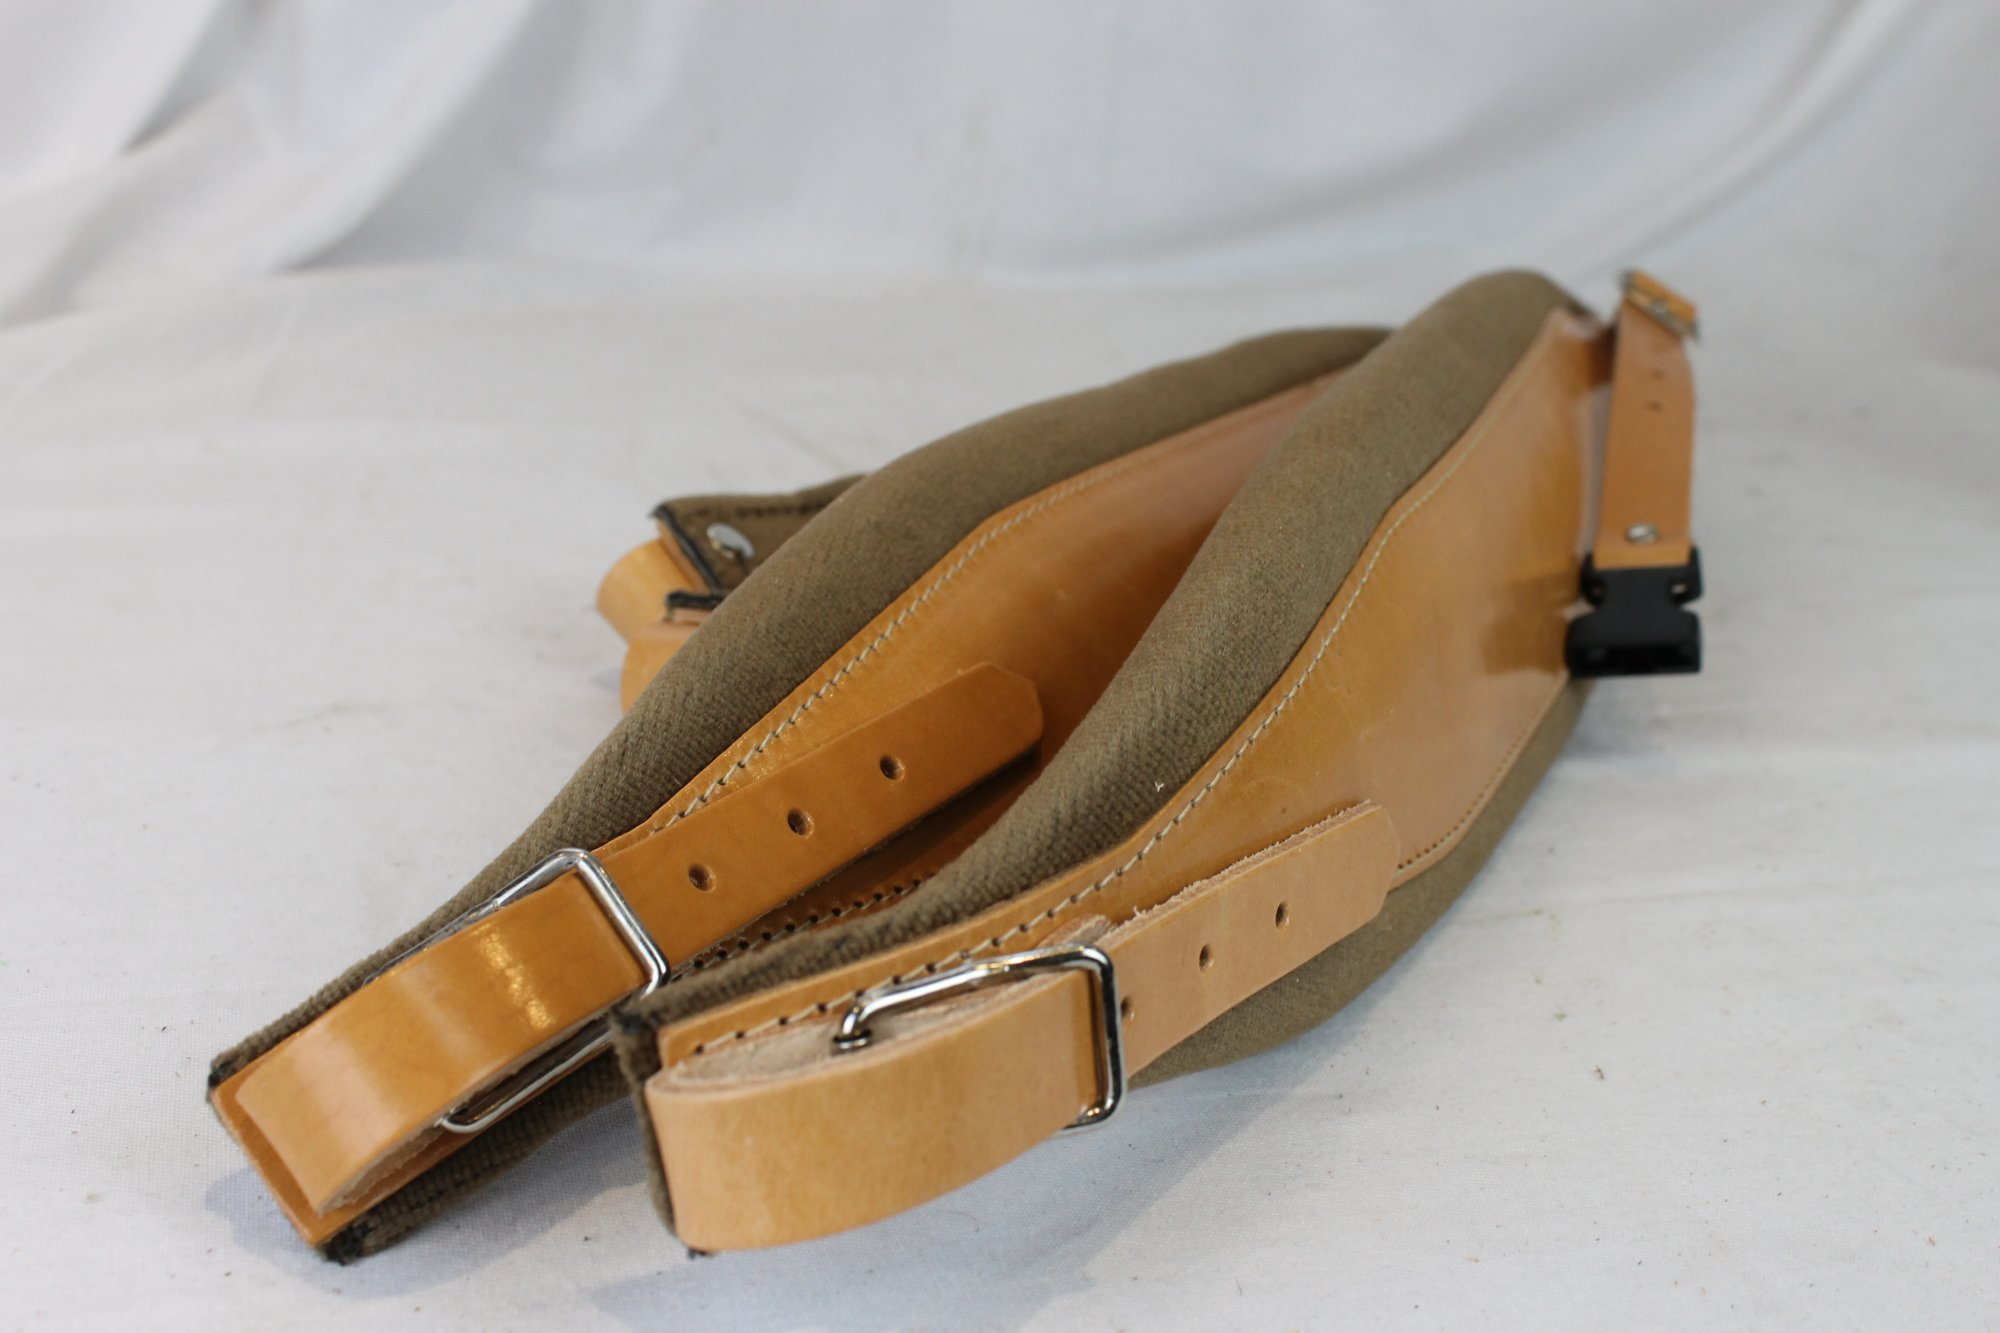 New Tan Leather Velour Fuselli Accordion Shoulder Straps Width (10cm / 3.9in) Length (95~115cm / 37.4~45.3in)